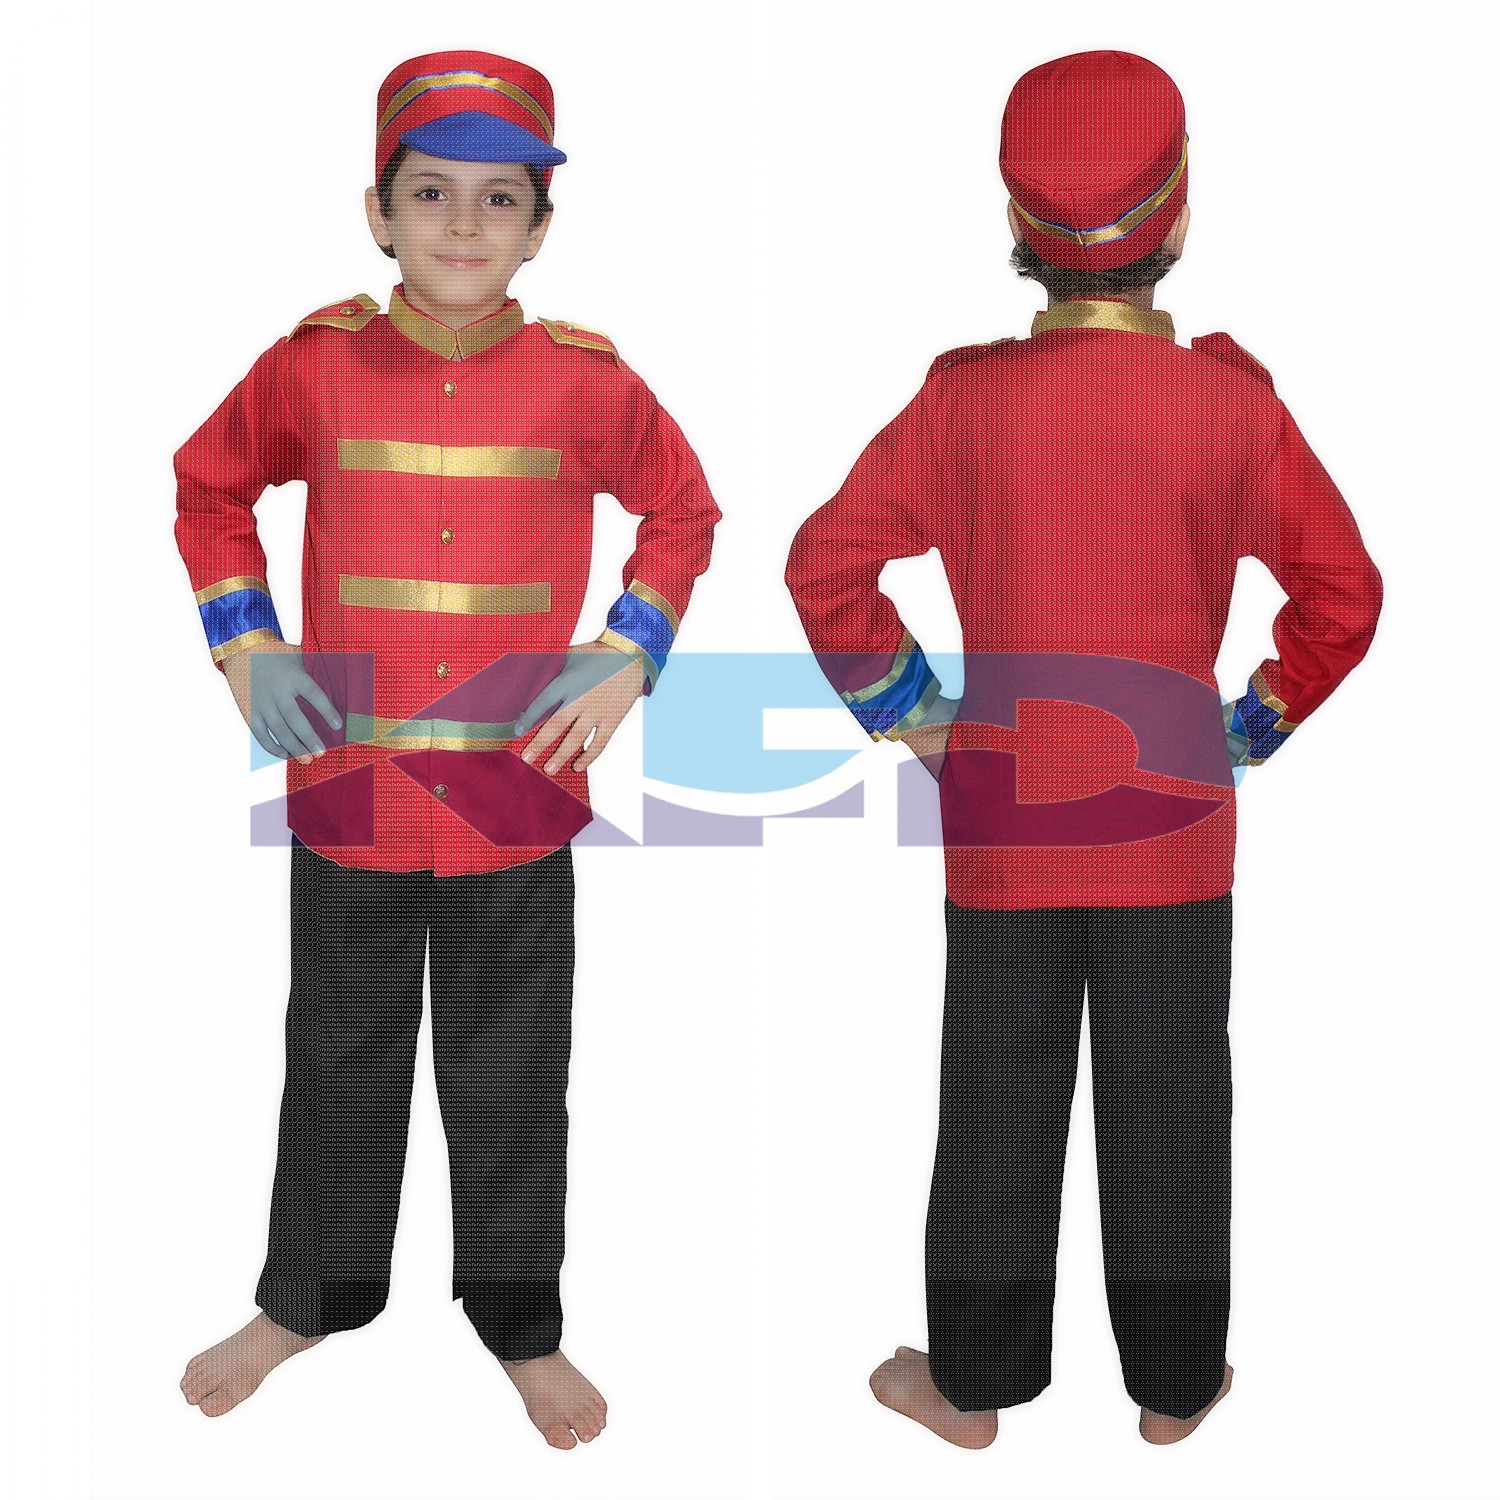 Mangal Panday/British soldier fancy dress for kids,National Hero Costume for School Annual function/Theme Party/Competition/Stage Shows Dress